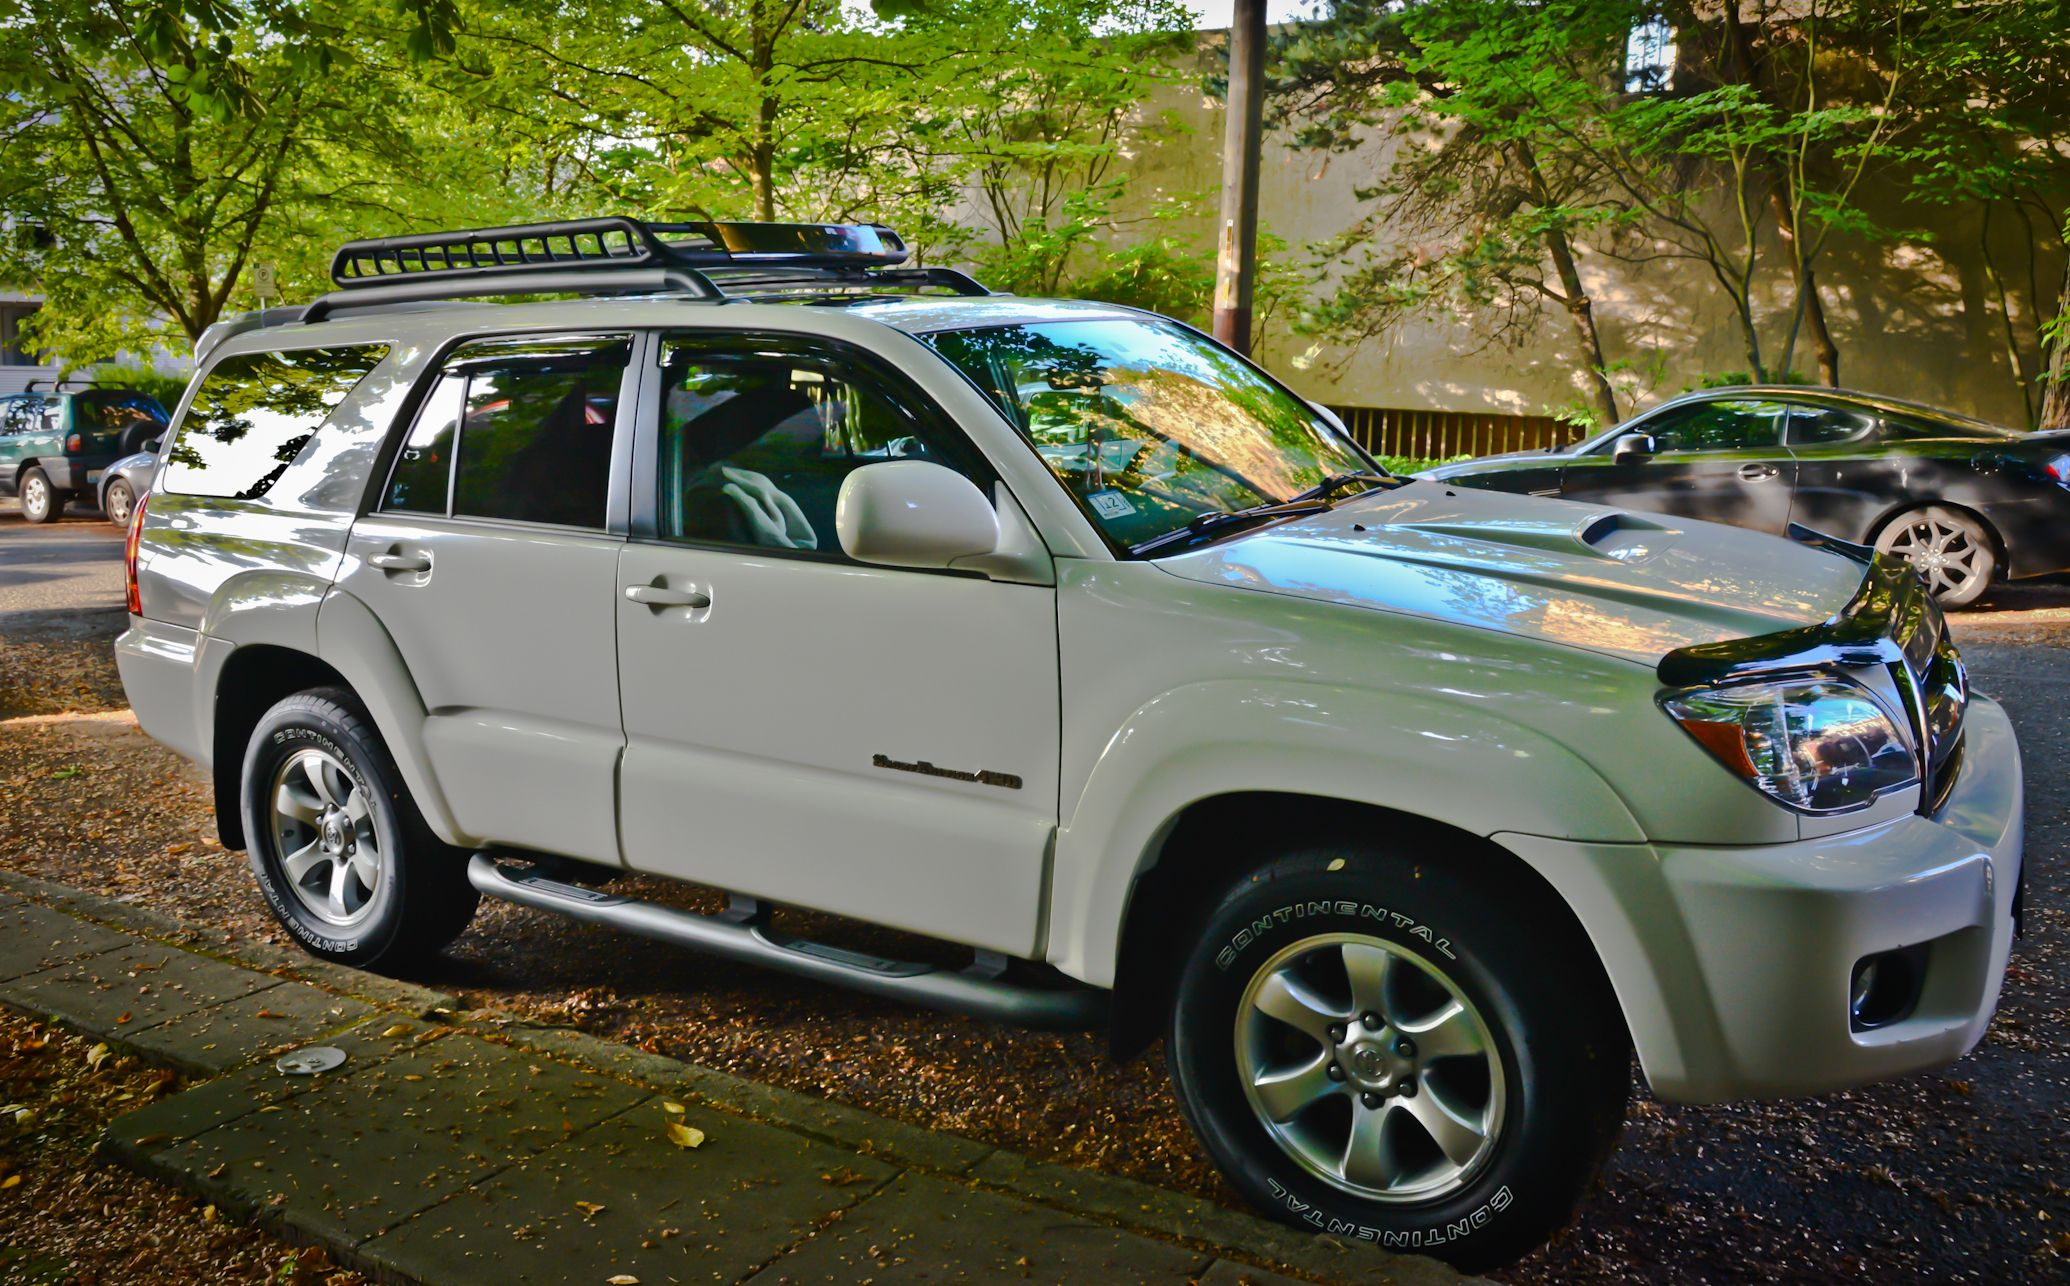 2007 4Runner with tube steps and a rugged roof rack basket